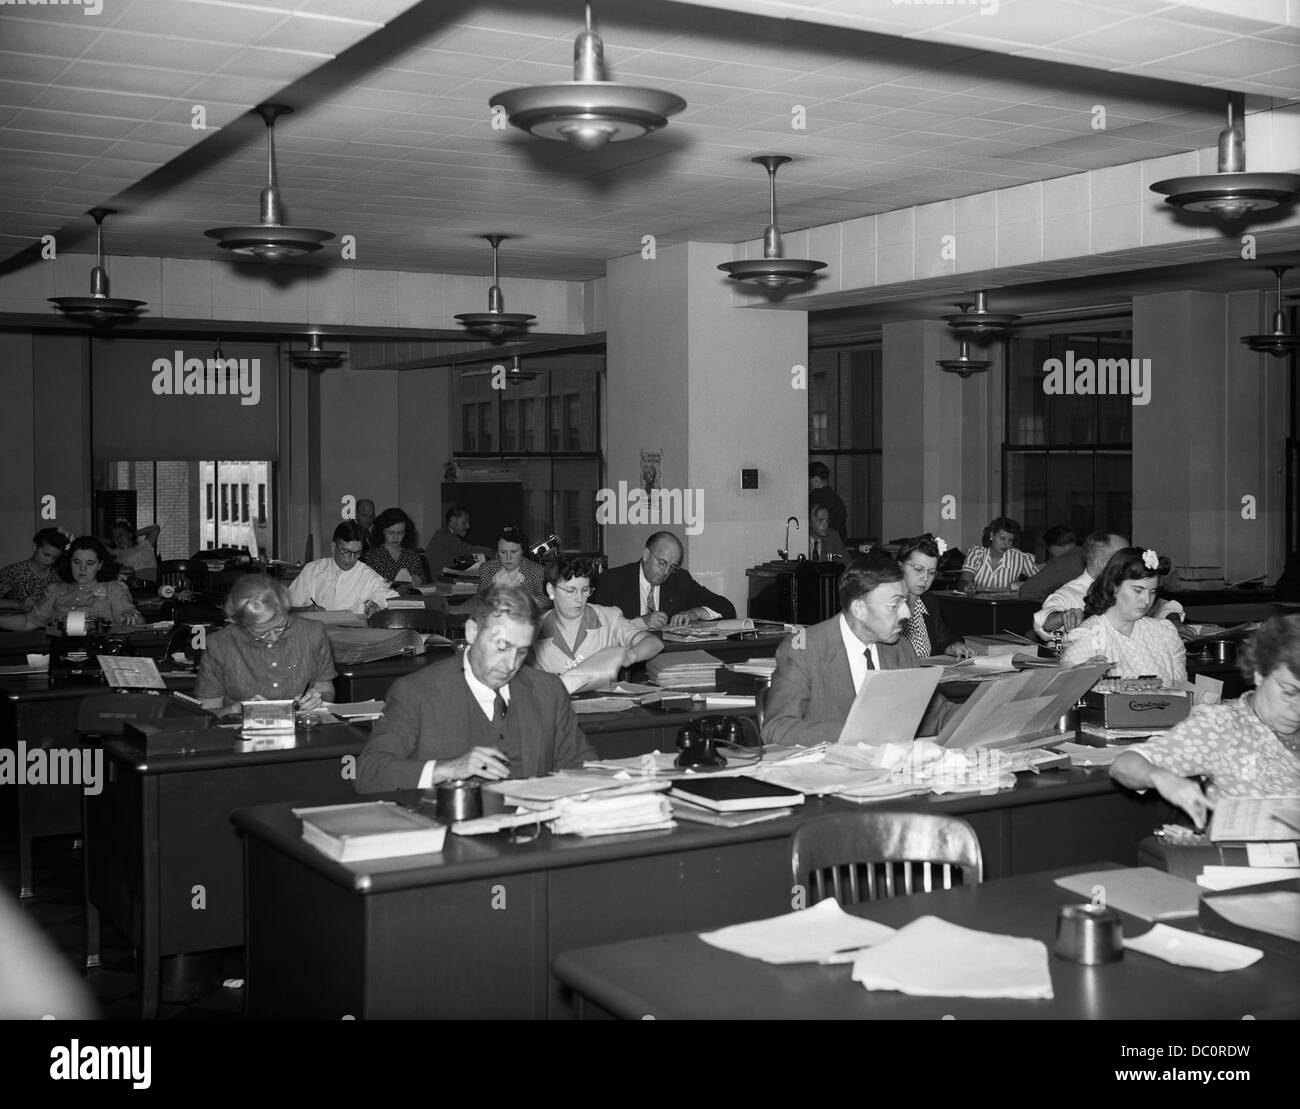 1940s interior business office men women desks accounting department stock photo royalty free for Department of interior jobs washington dc